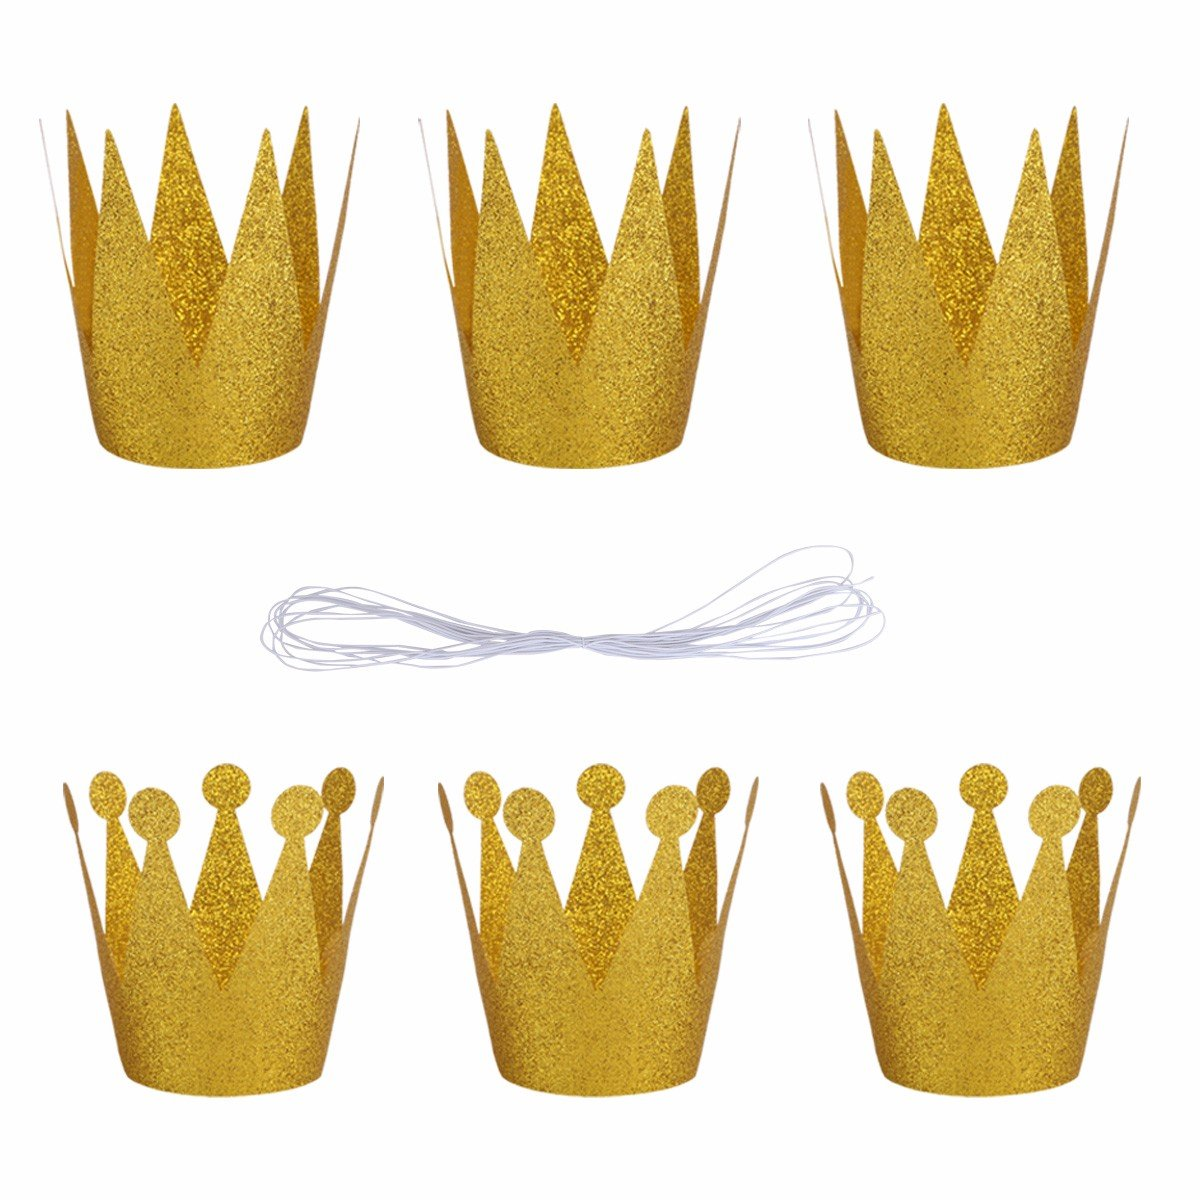 FEESHOW 6PCS Birthday Party Prince Princess Shiny Crown Hats Party Decorations Supplies for Adults Kids Gold OneSize